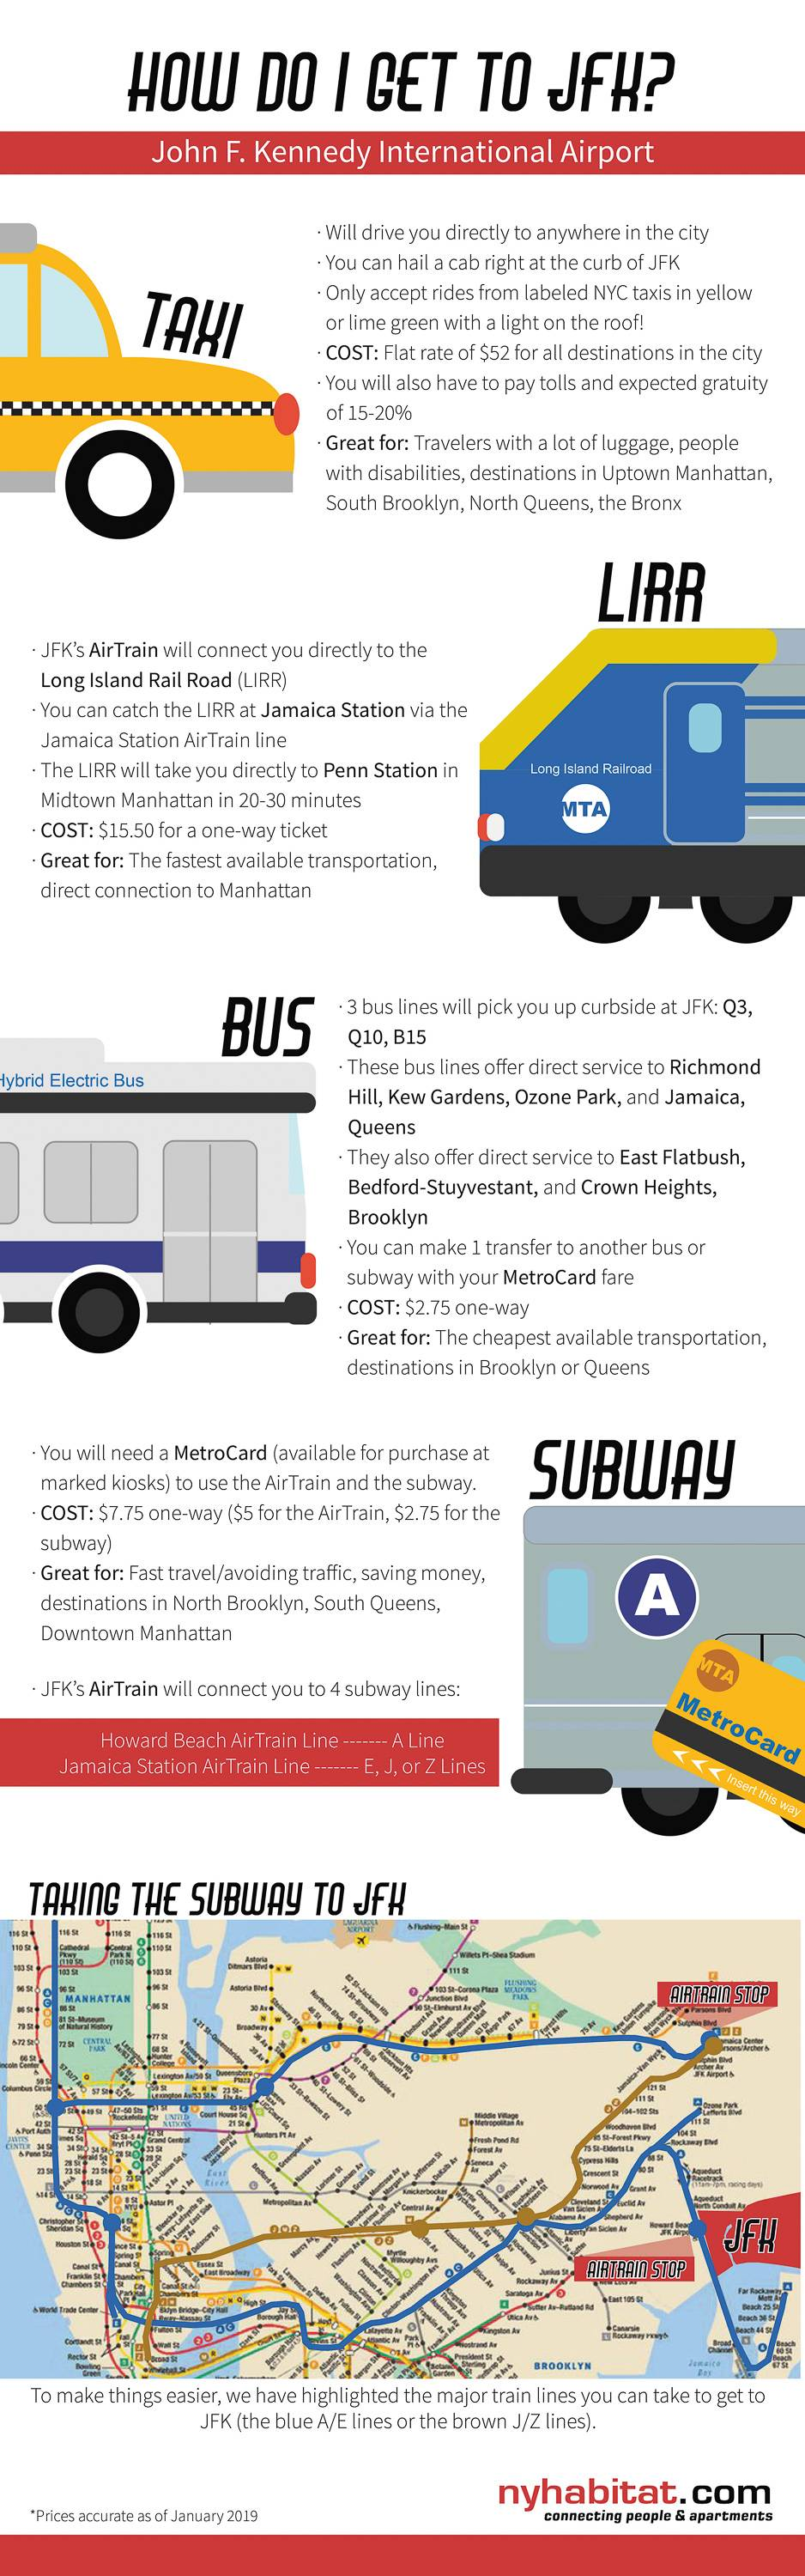 New York Habitat infographic describing JFK transportation options including taxi, subway, buses and Long Island Rail Road.